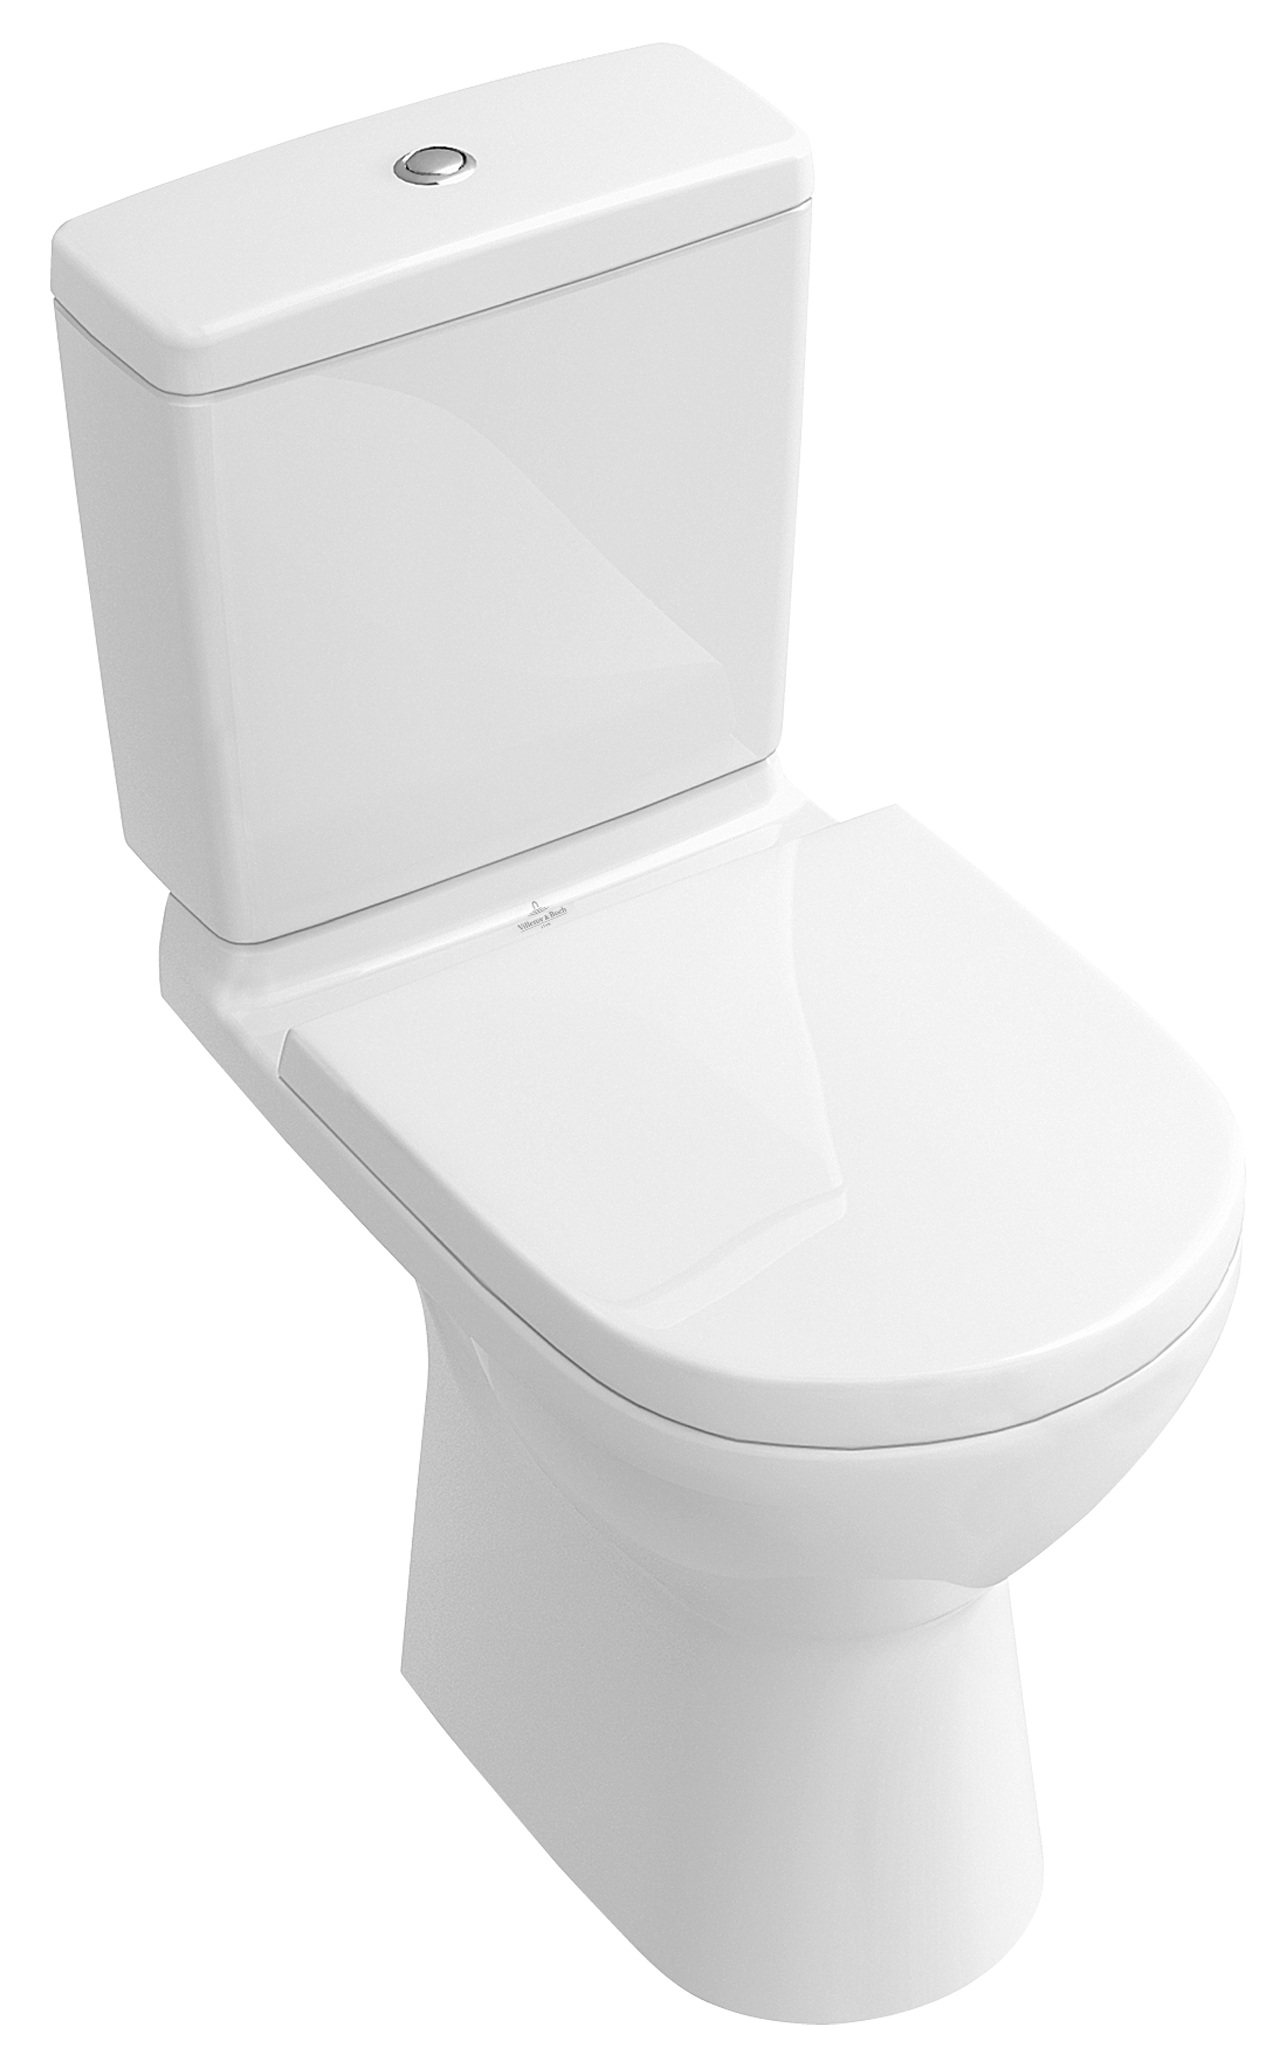 washdown wc for close coupled wc suite rimless 5661r0 villeroy boch